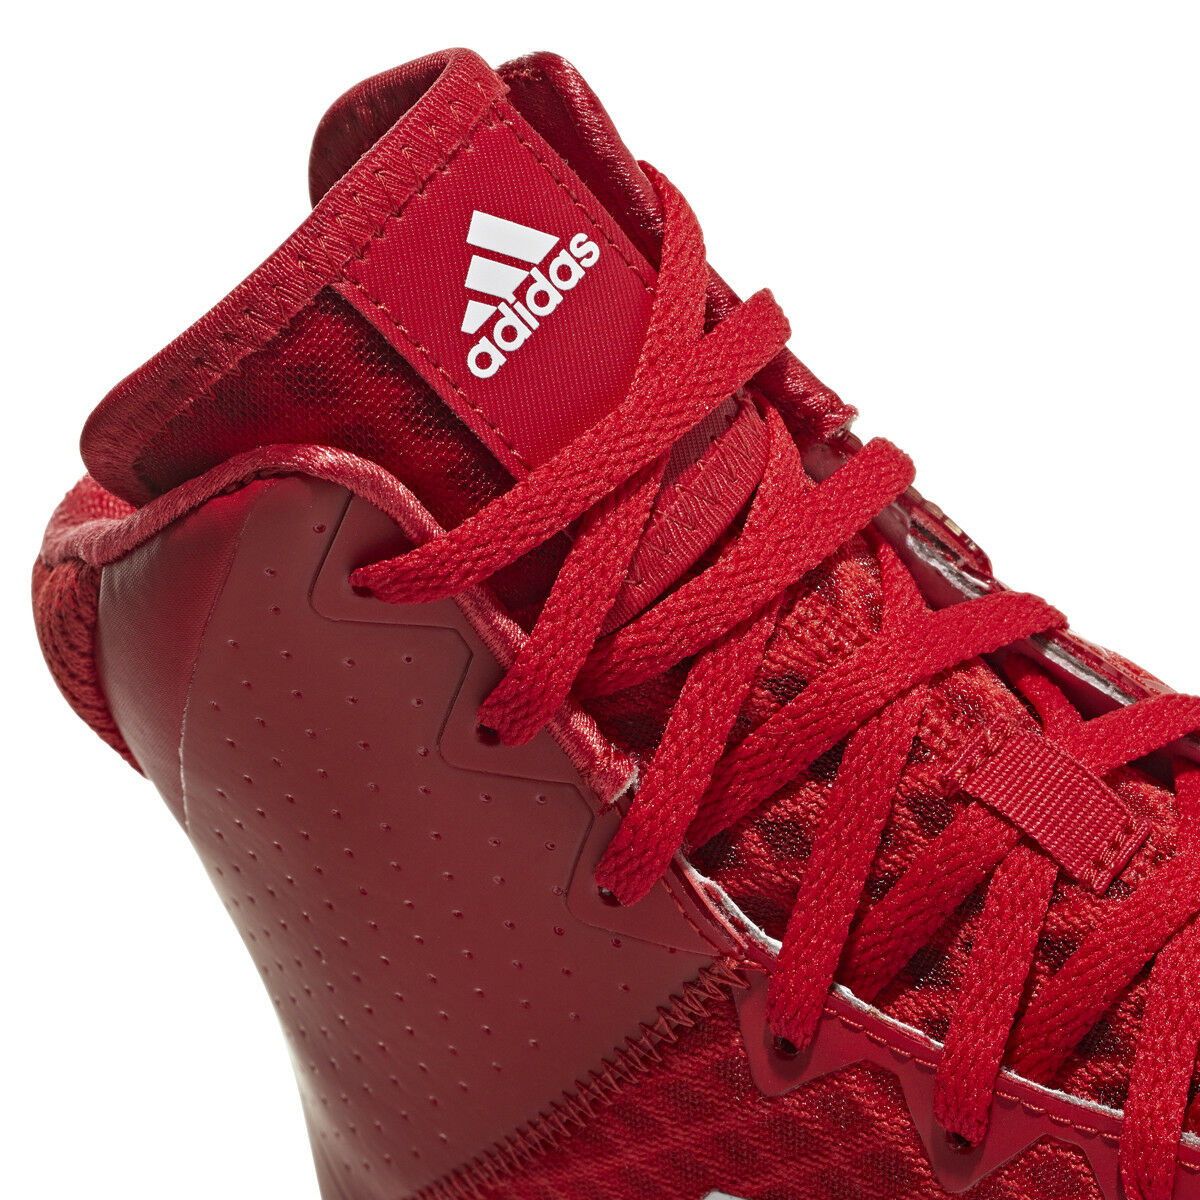 Adidas Mat Wizard 4 Uomo Wrestling Shoes (NEW) AC6972 - Red, White (NEW) Shoes Lists @  129 992edc